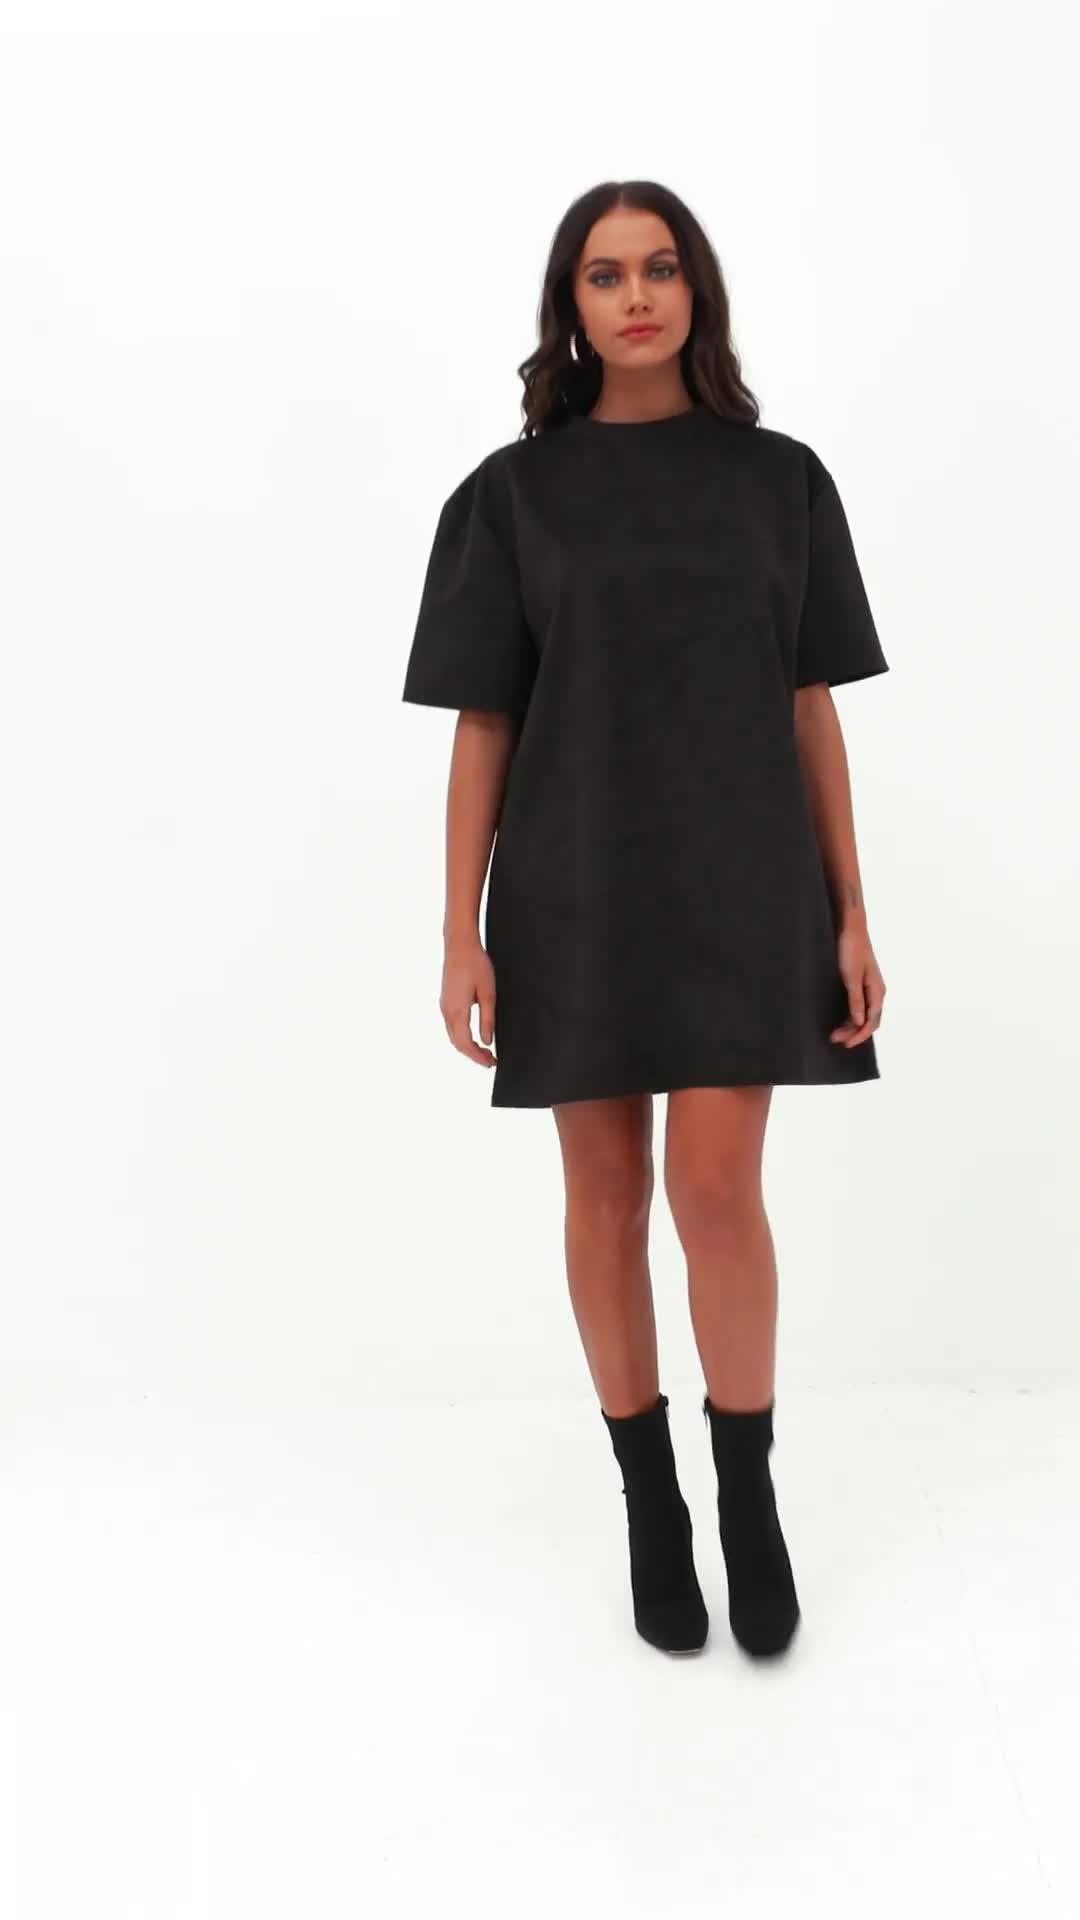 79e6f15a721 Missguided - Black Oversized High Neck Suede Dress - Lyst. View fullscreen